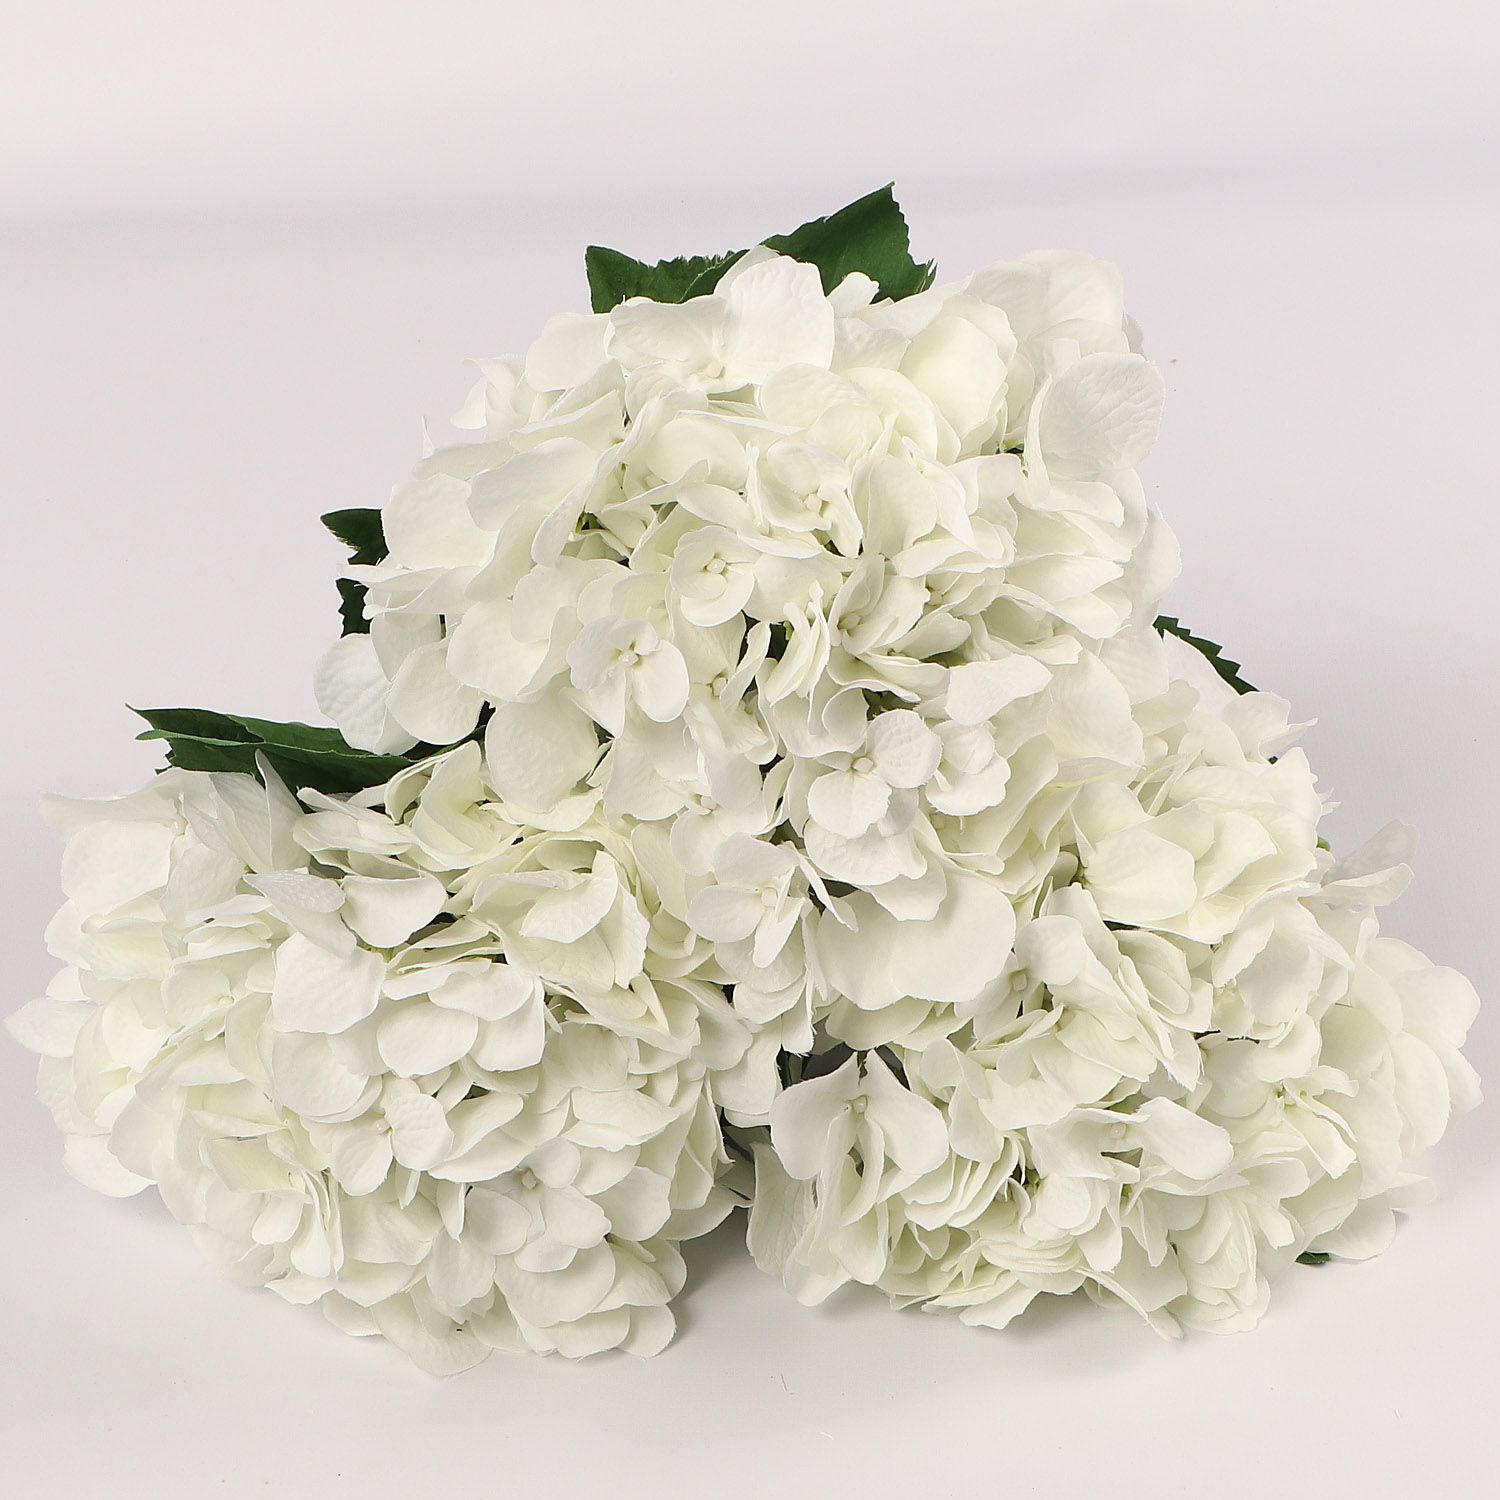 Cream White 27 Silk Artificial Hydrangea Flower Fake Flowers For Decorations And More Muc Artificial Hydrangea Flowers Hydrangea Flower Artificial Hydrangeas